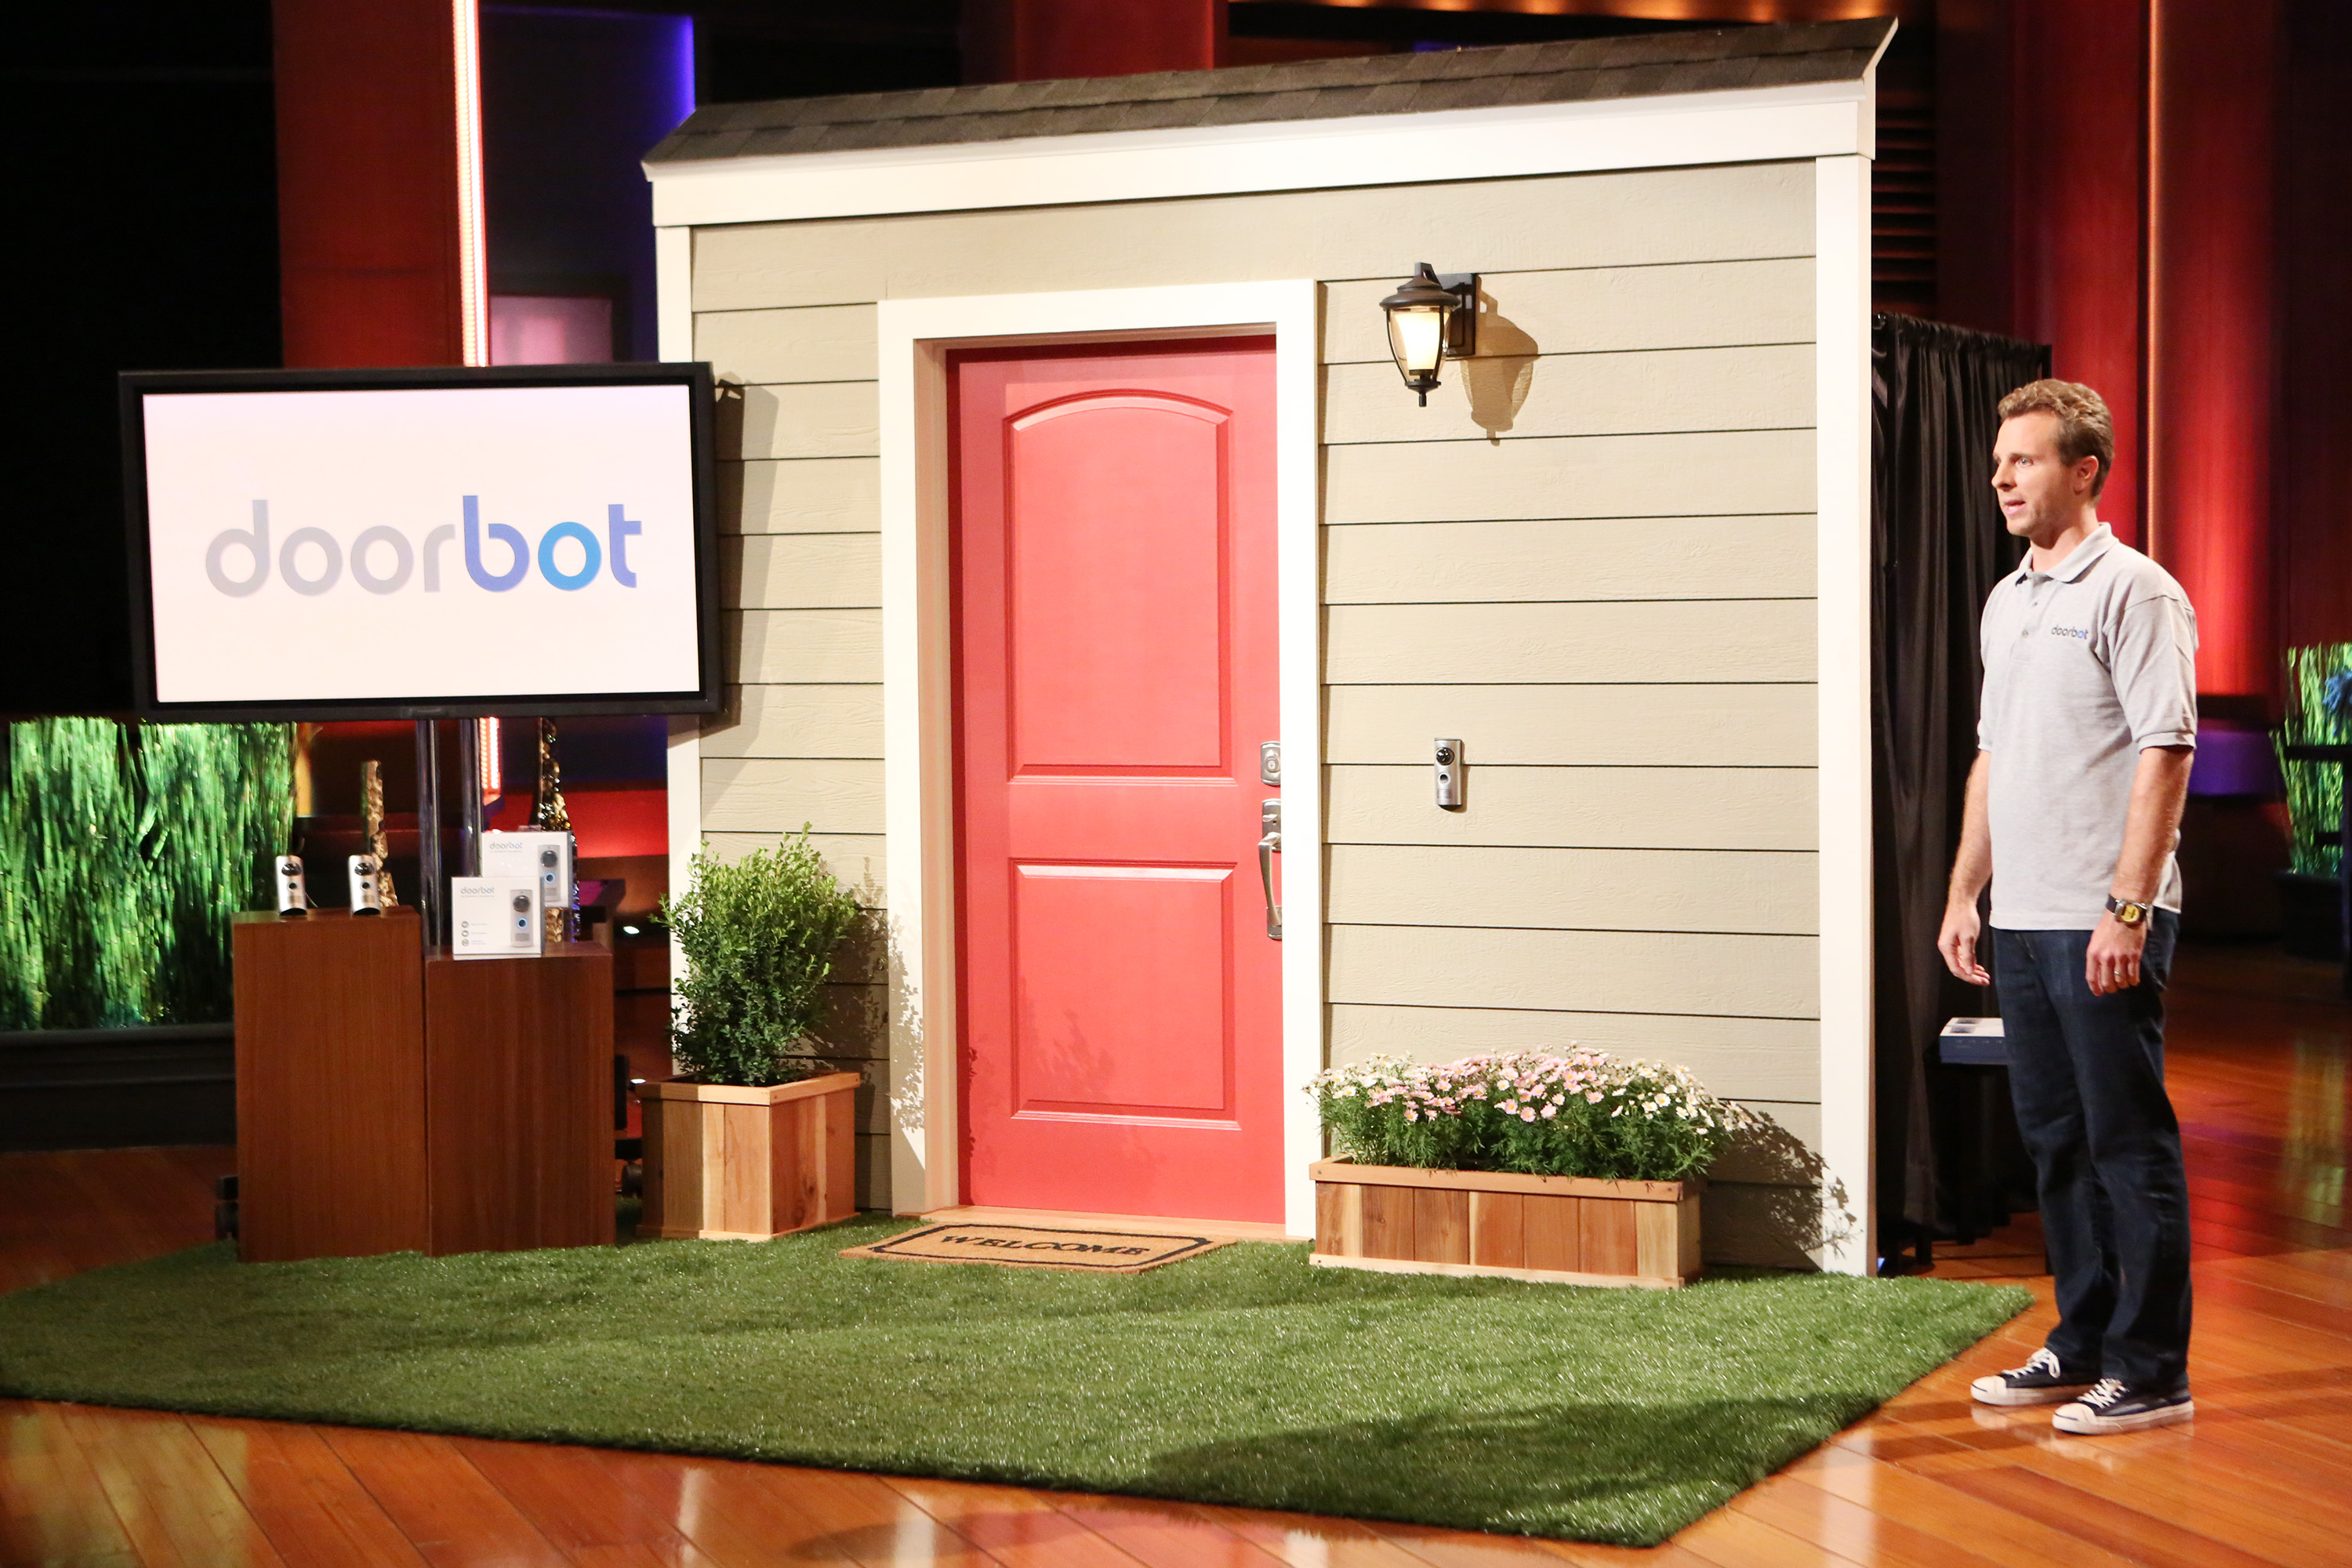 Ring CEO Jamie Siminoff appears on TV show Shark Tank pitching 'Doorbot'